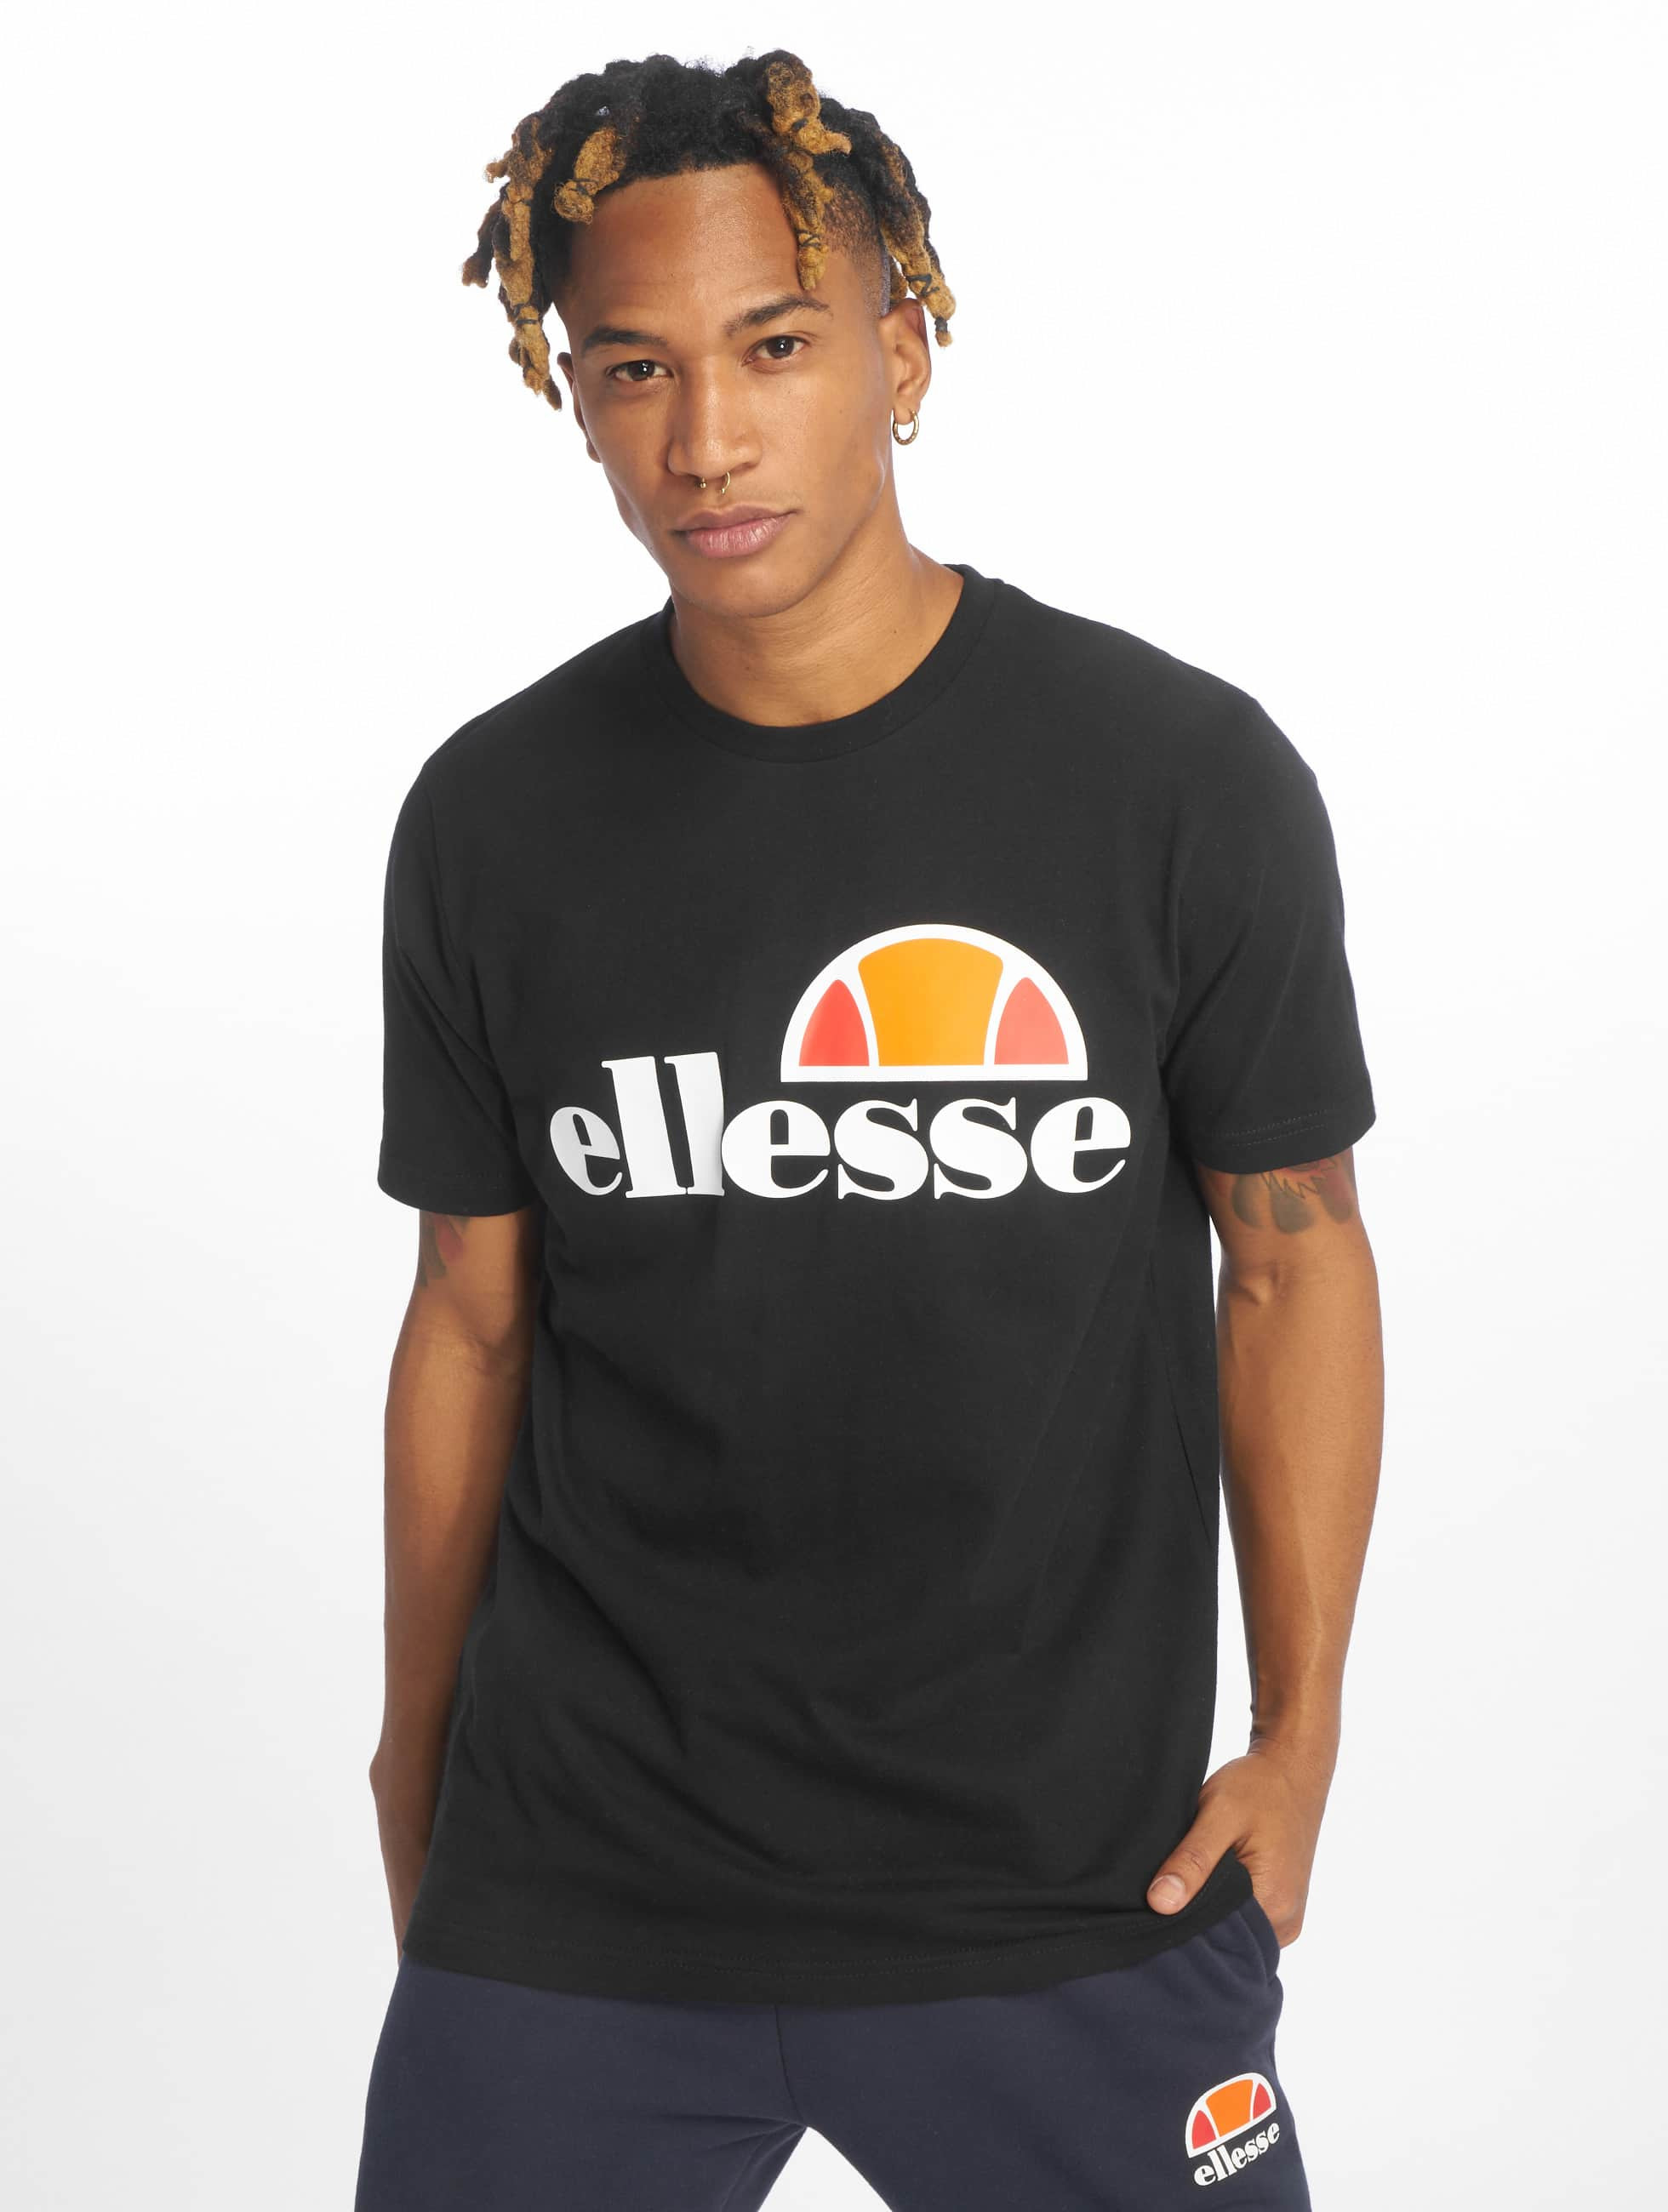 ellesse prado noir homme t shirt ellesse acheter pas cher haut 333173. Black Bedroom Furniture Sets. Home Design Ideas